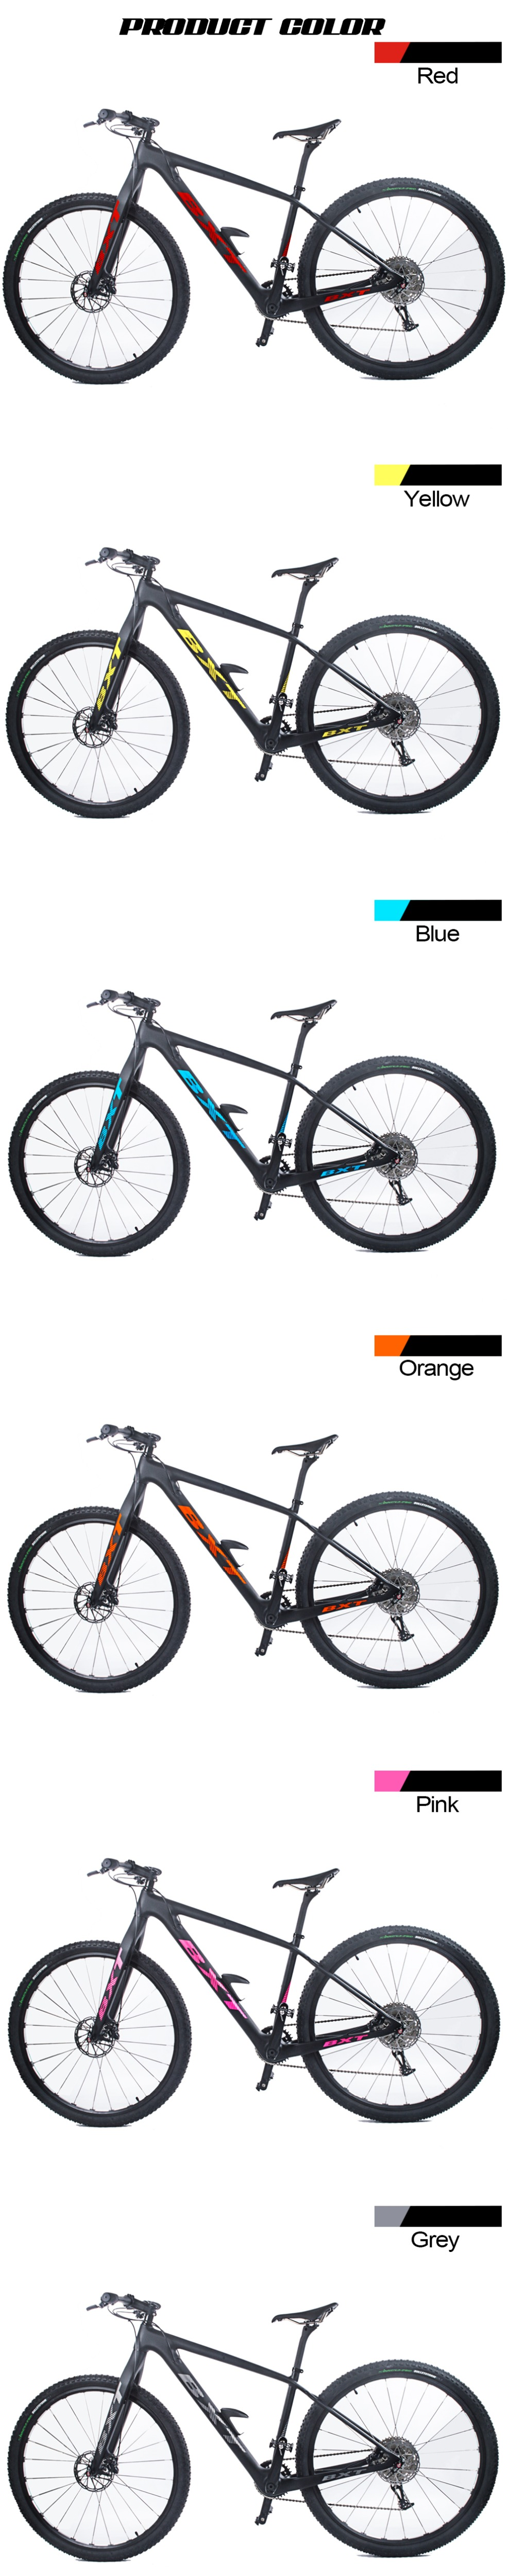 "HTB1j7zaXffsK1RjSszbq6AqBXXaK - BXT 29inch carbon fiber Mountain bike 1*11 Pace Double Disc Brake 29"" MTB Menbicycle 29er wheel S/M/L body full bike"